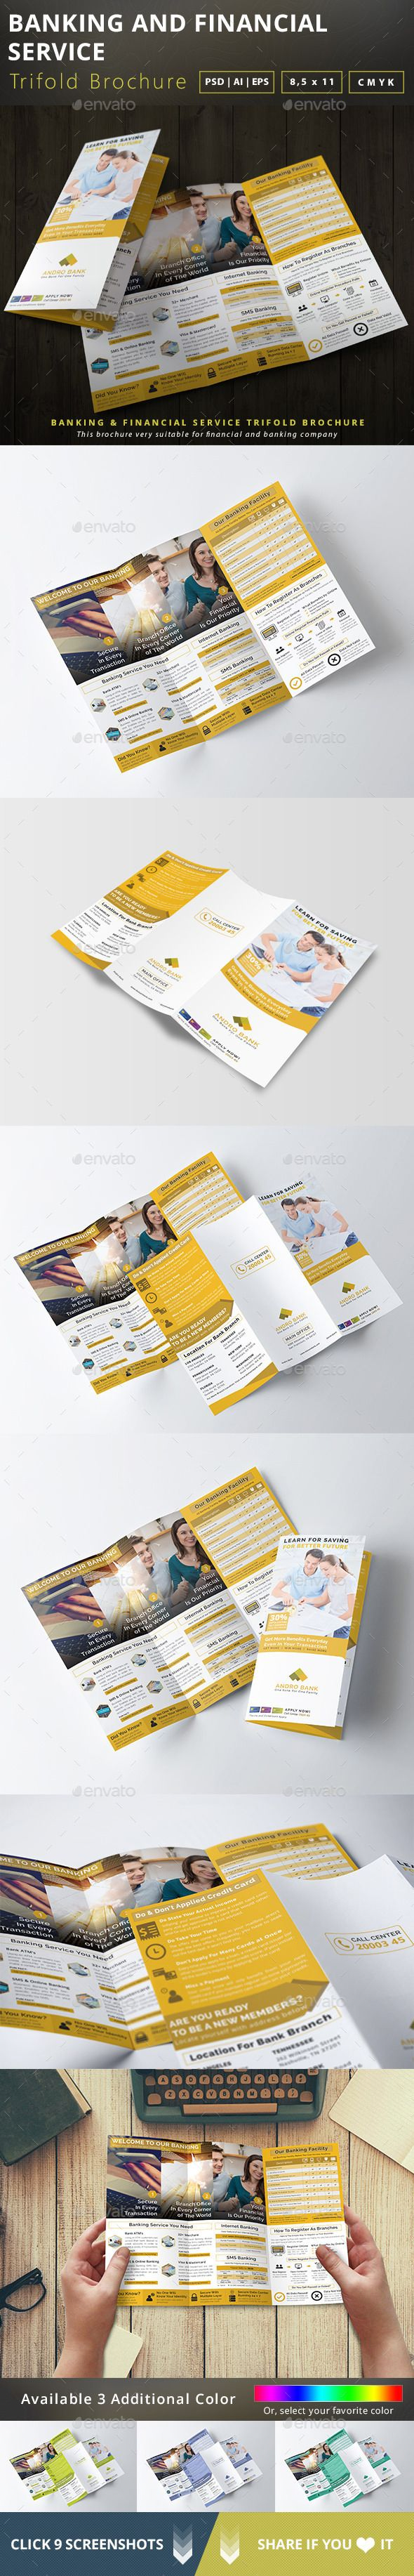 Banking and Financial Service Trifold Brochure  #credit card #deposit #finance b…